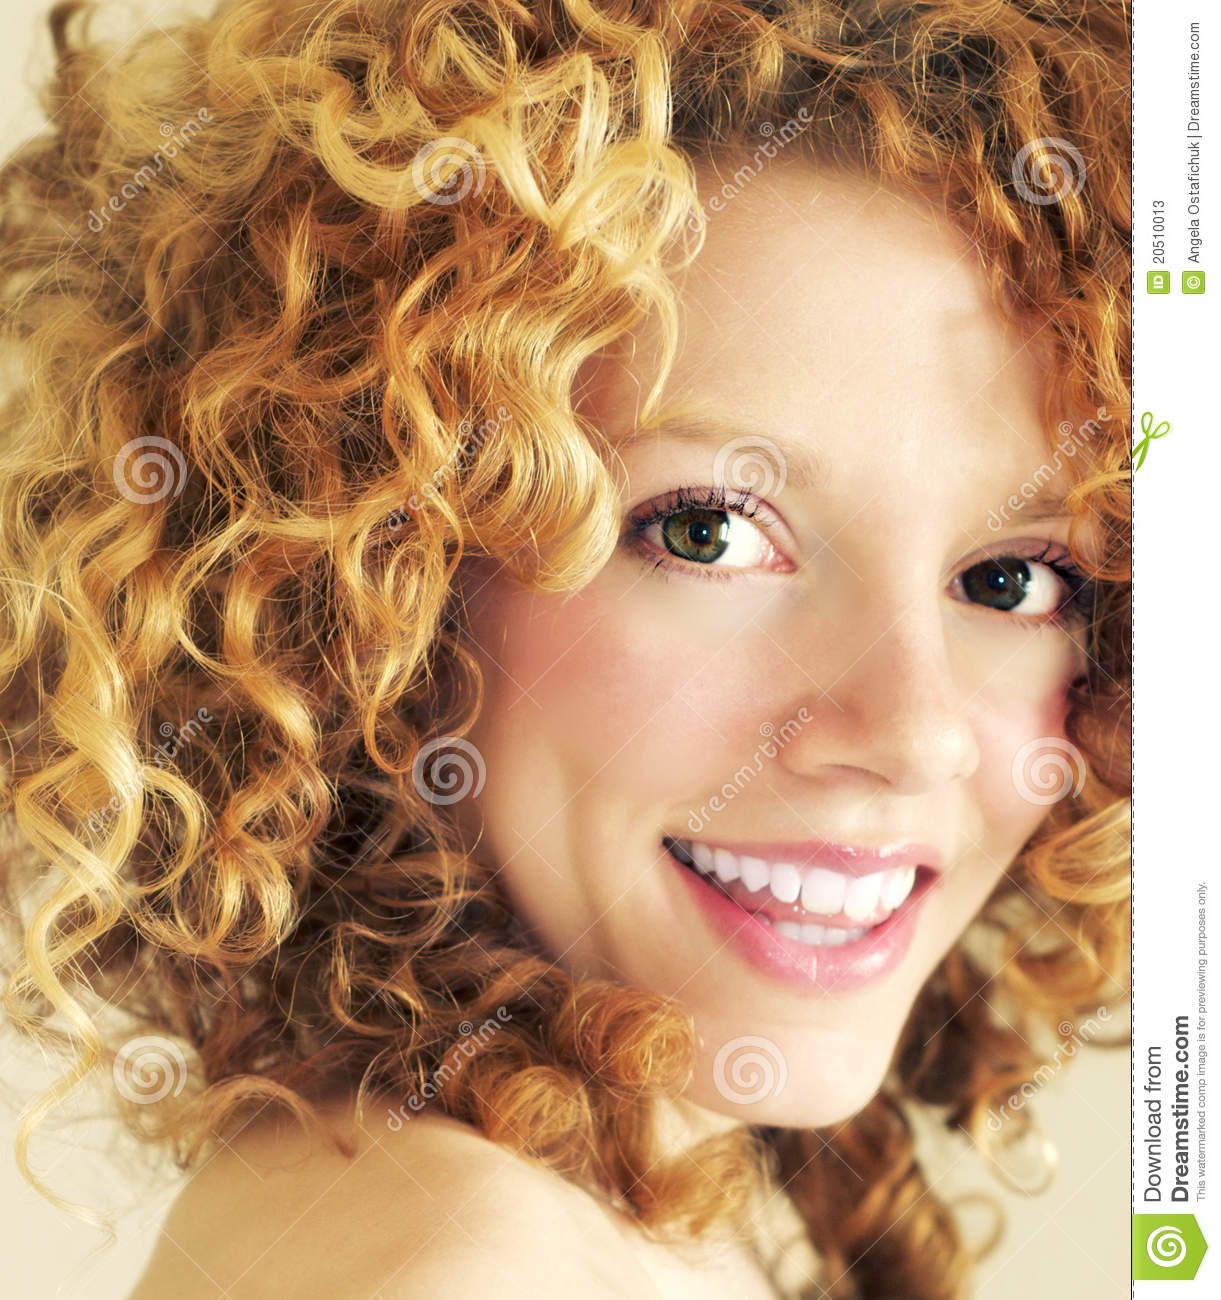 Blonde Curls And Happy Smile Stock Photos Image 20510013